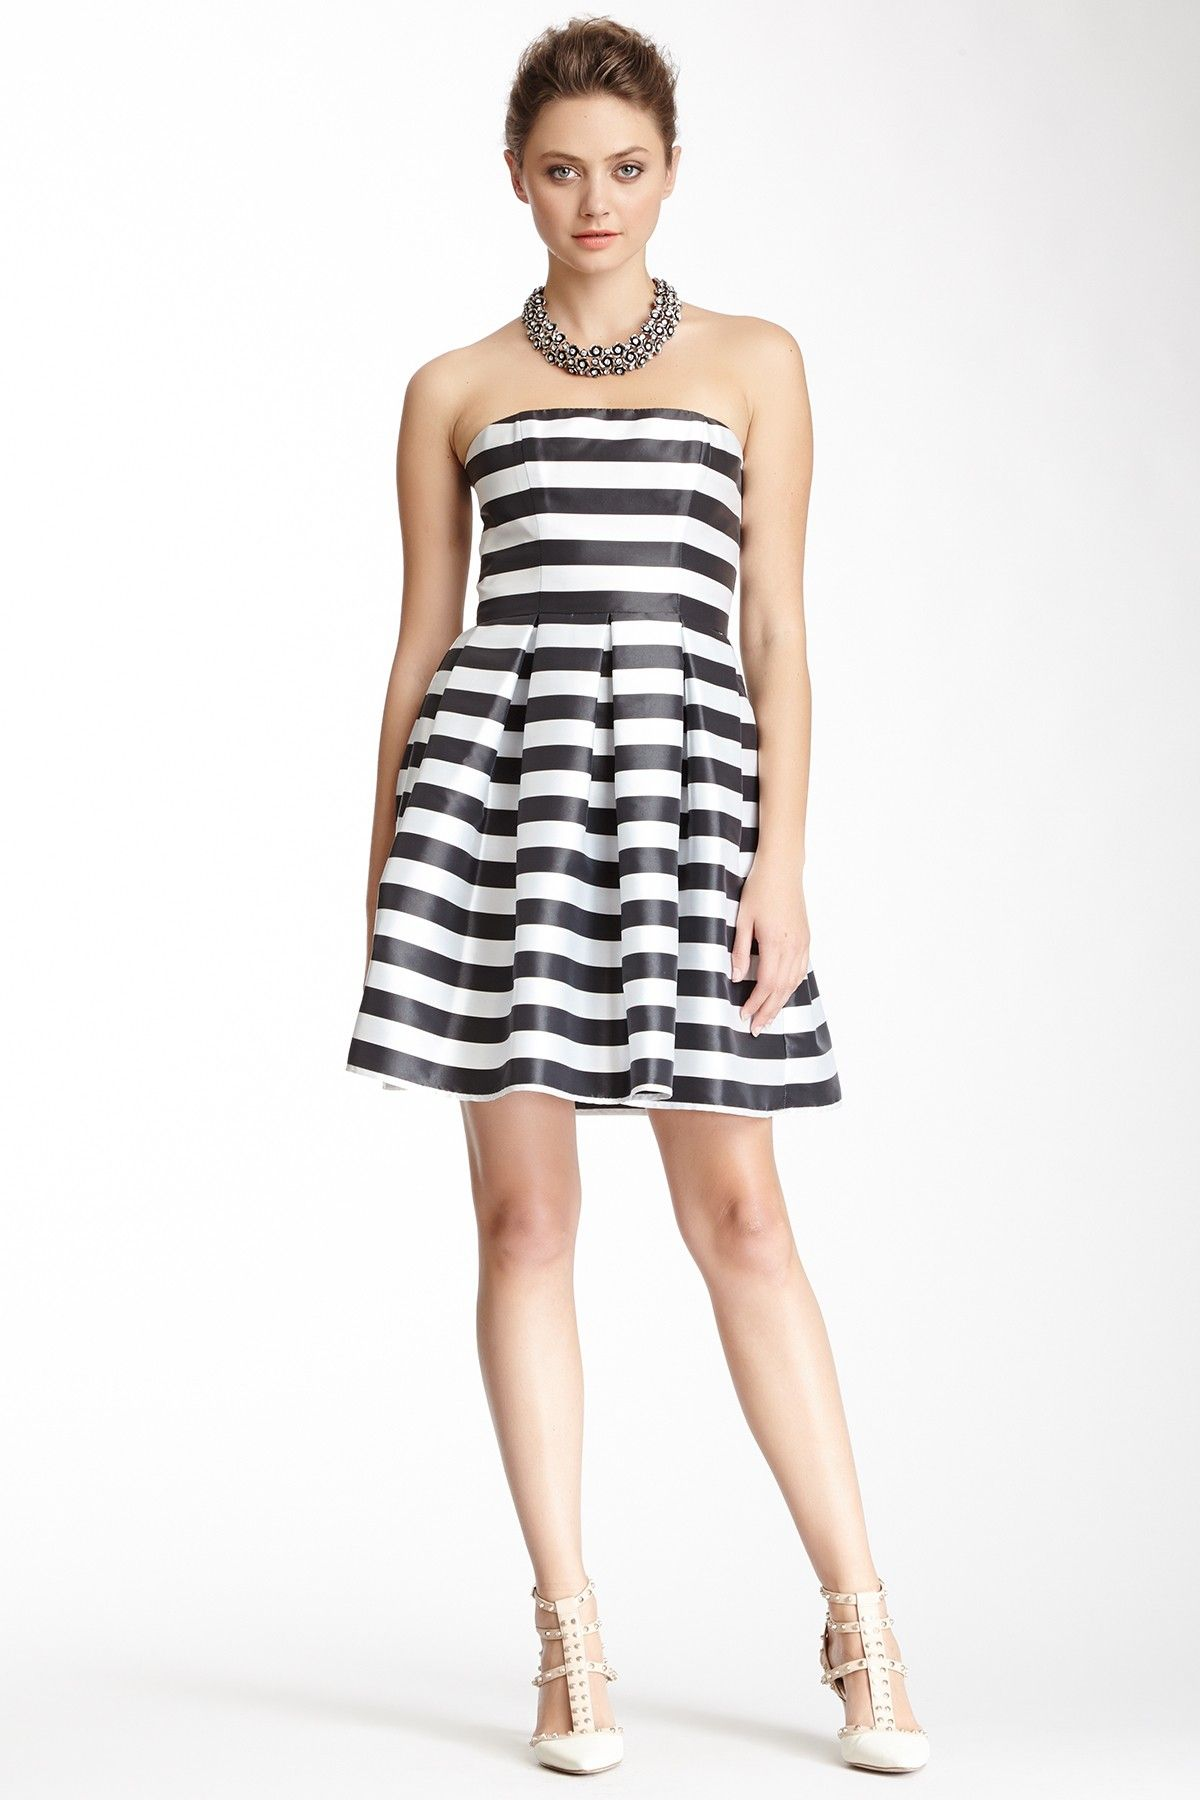 A.B.S. A.B.S. by Allen Schwartz Sweetheart Bustier Dress | Nordstrom ...